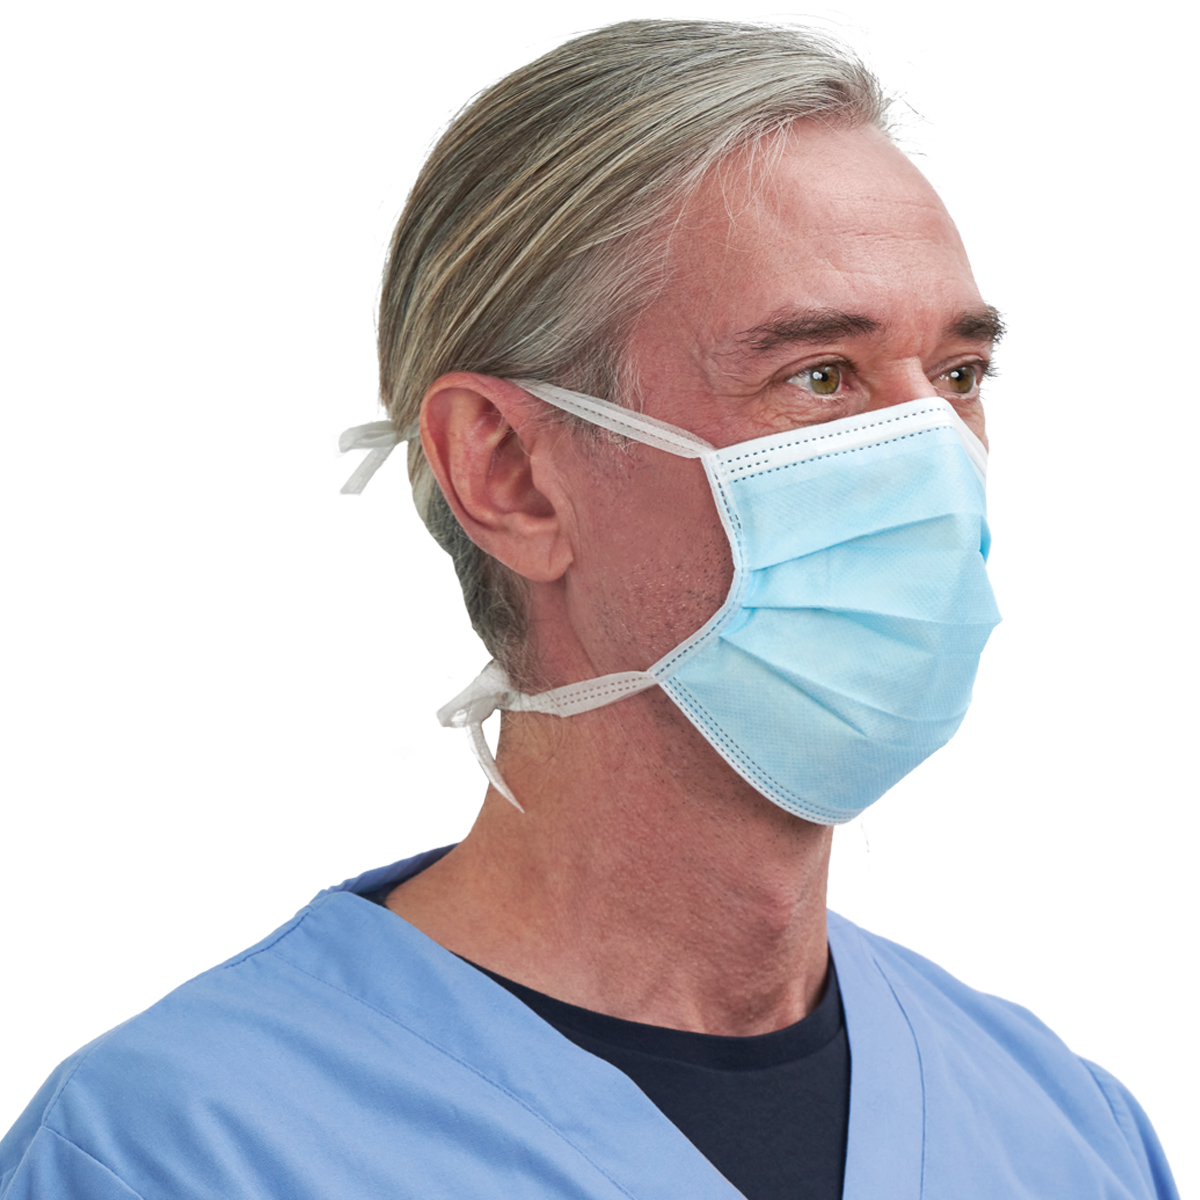 ASTM Level 3 Surgical Face Mask Image